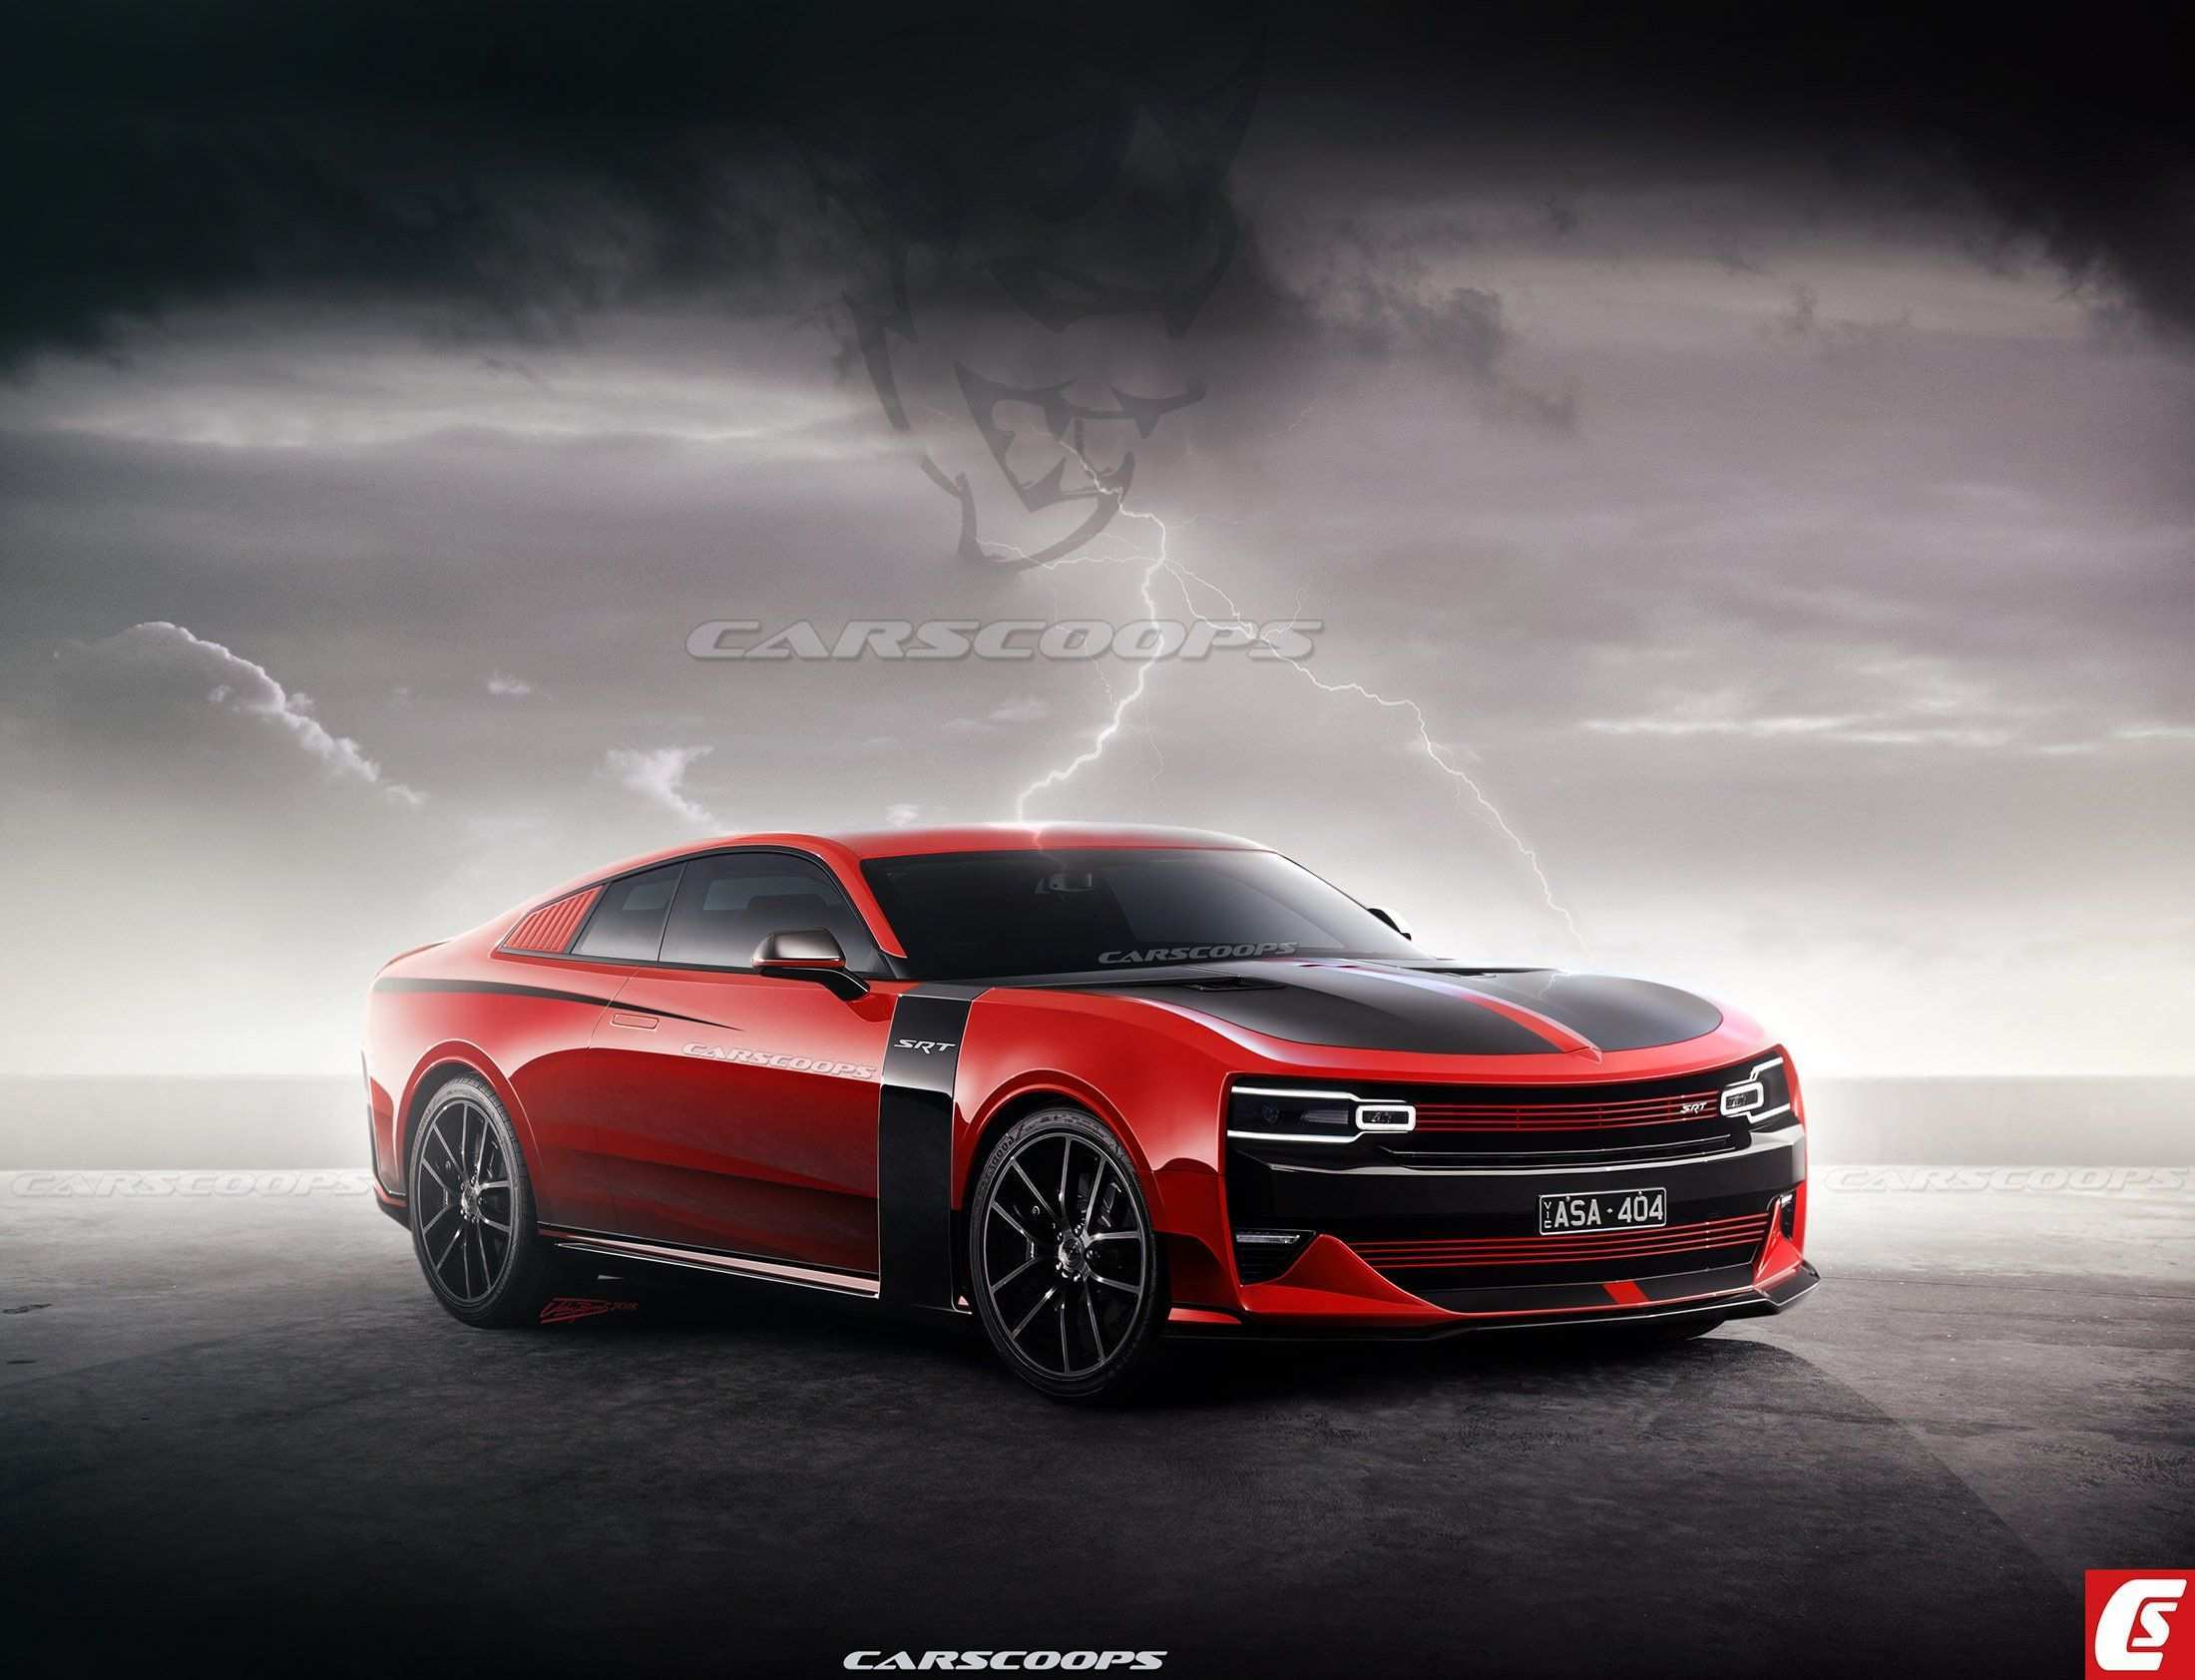 68 Concept of The Dodge Charger 2019 Concept Spy Shoot Exterior with The Dodge Charger 2019 Concept Spy Shoot